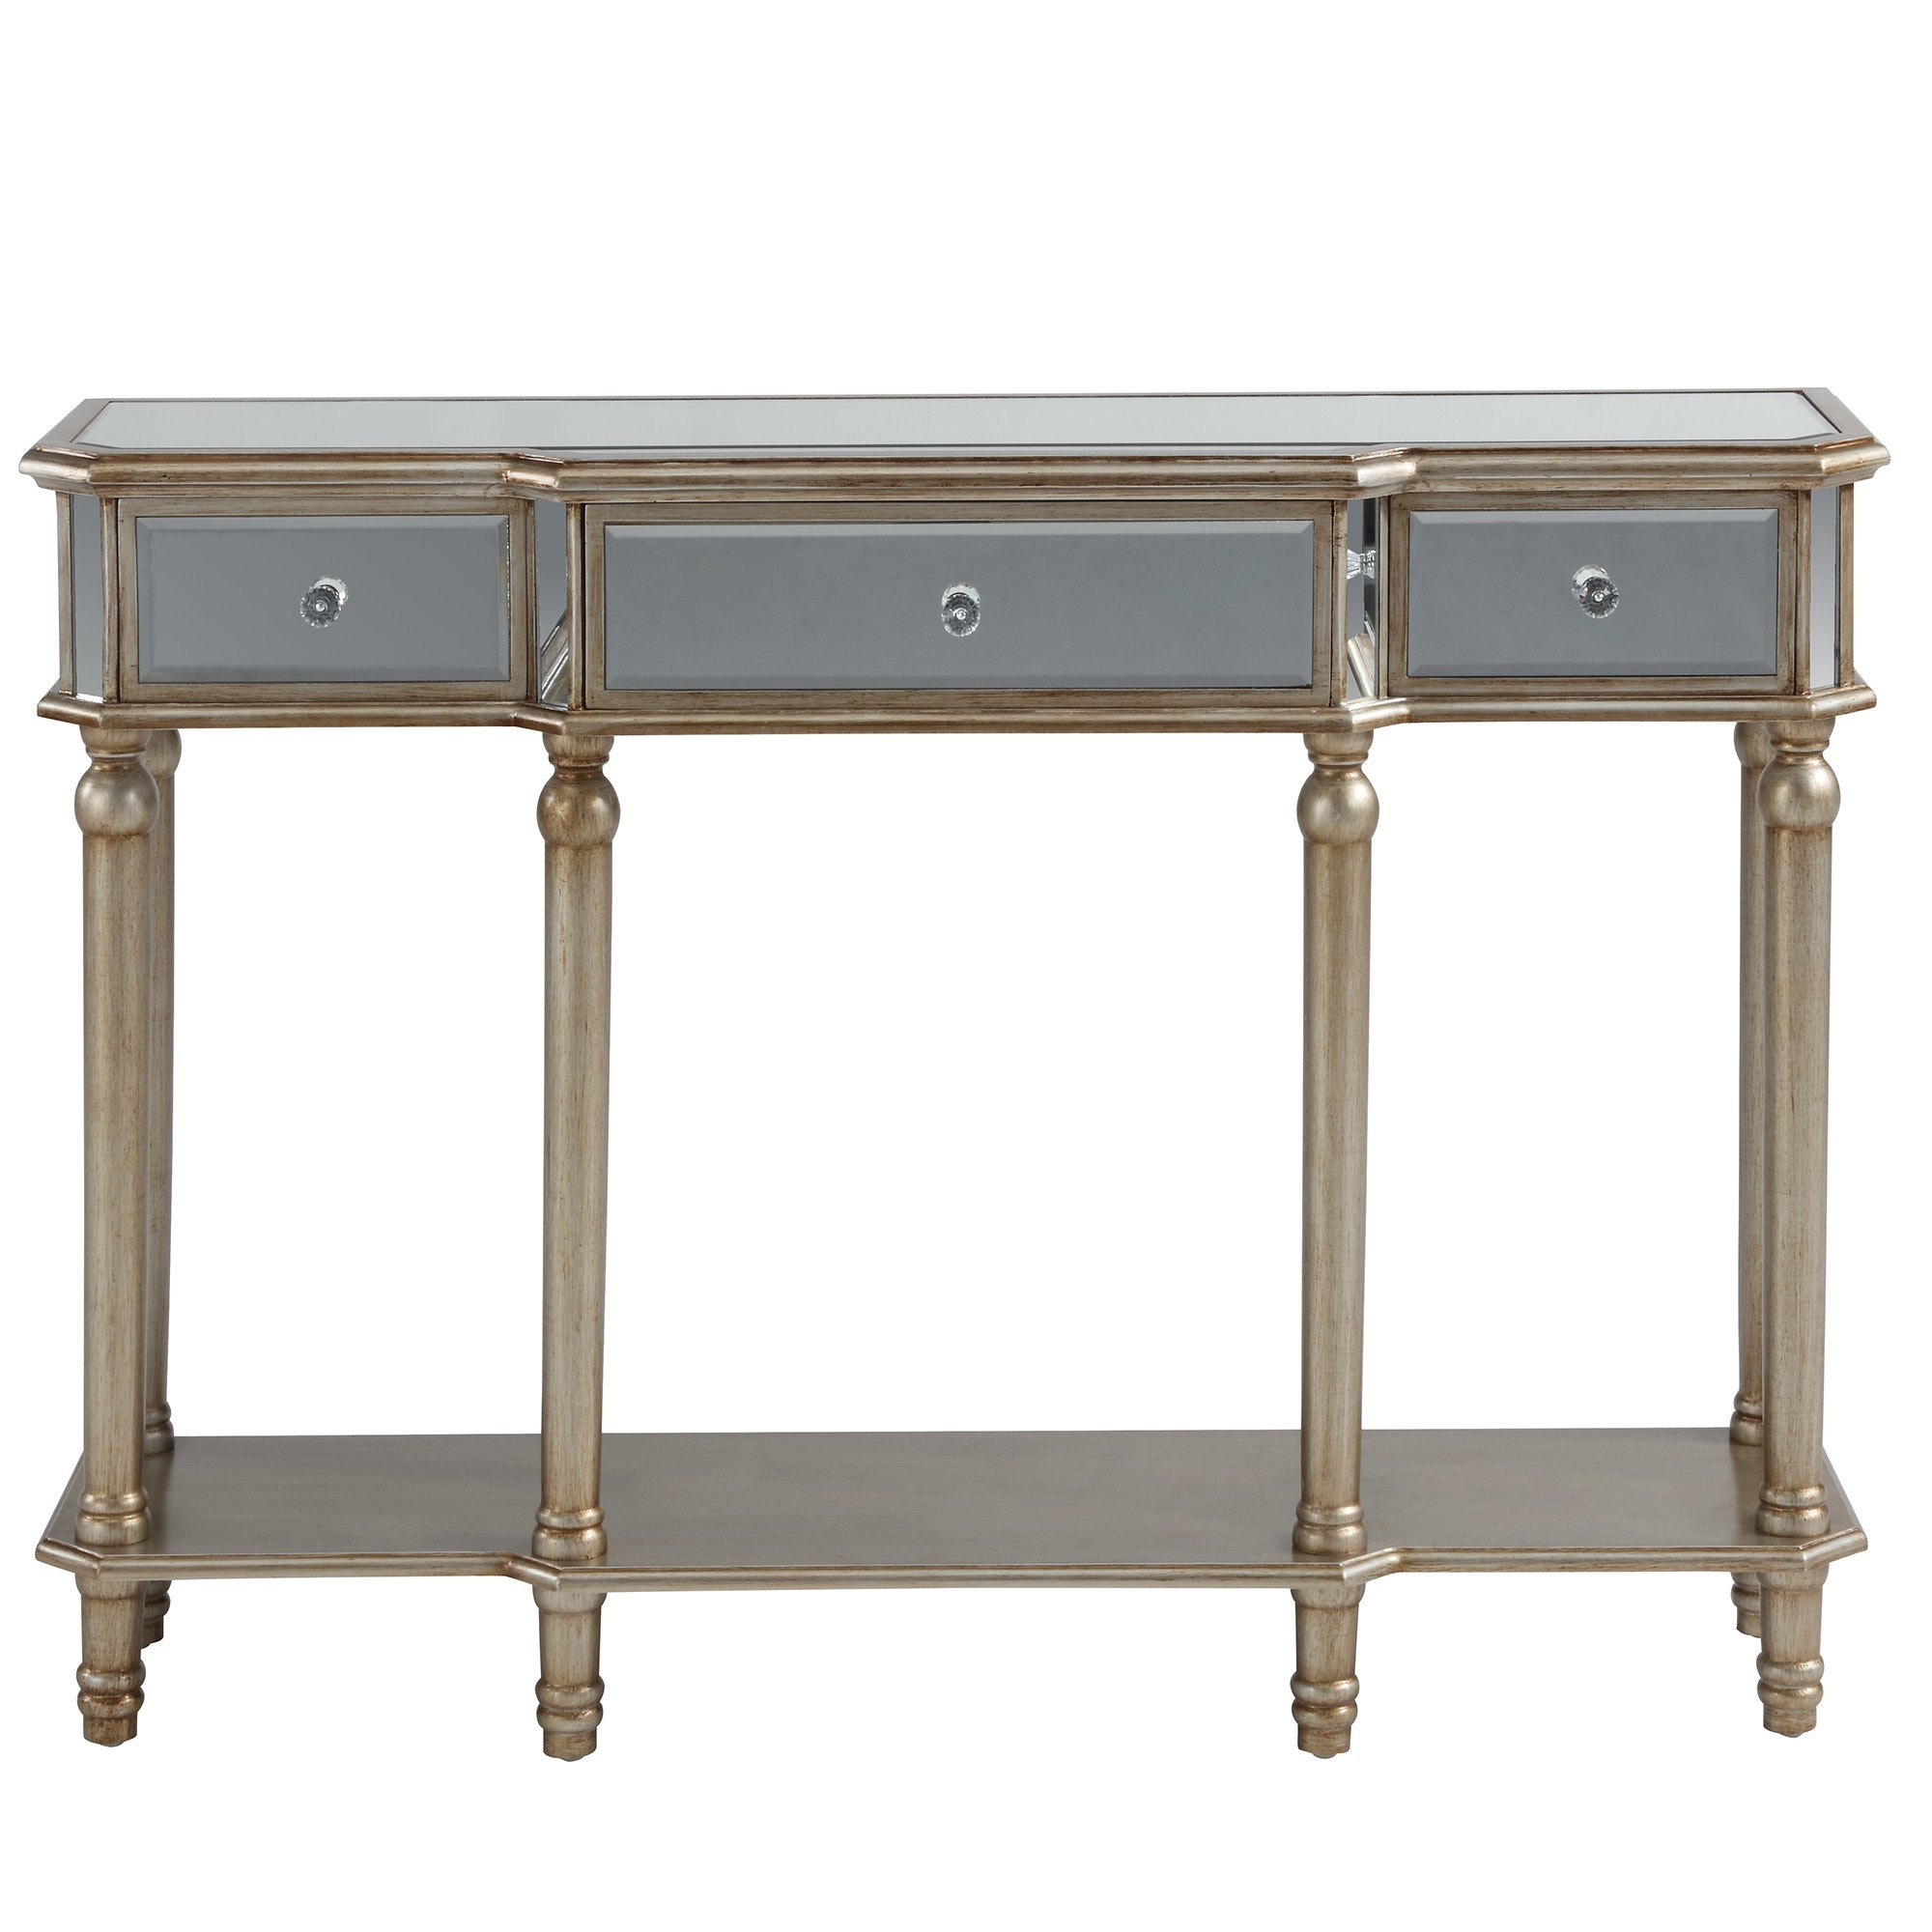 eden console table silver tables cabinets accent captivating curio cabinet with mirrored glass door wood doors half oval breathtaking powell black doo drawer white telephone barn